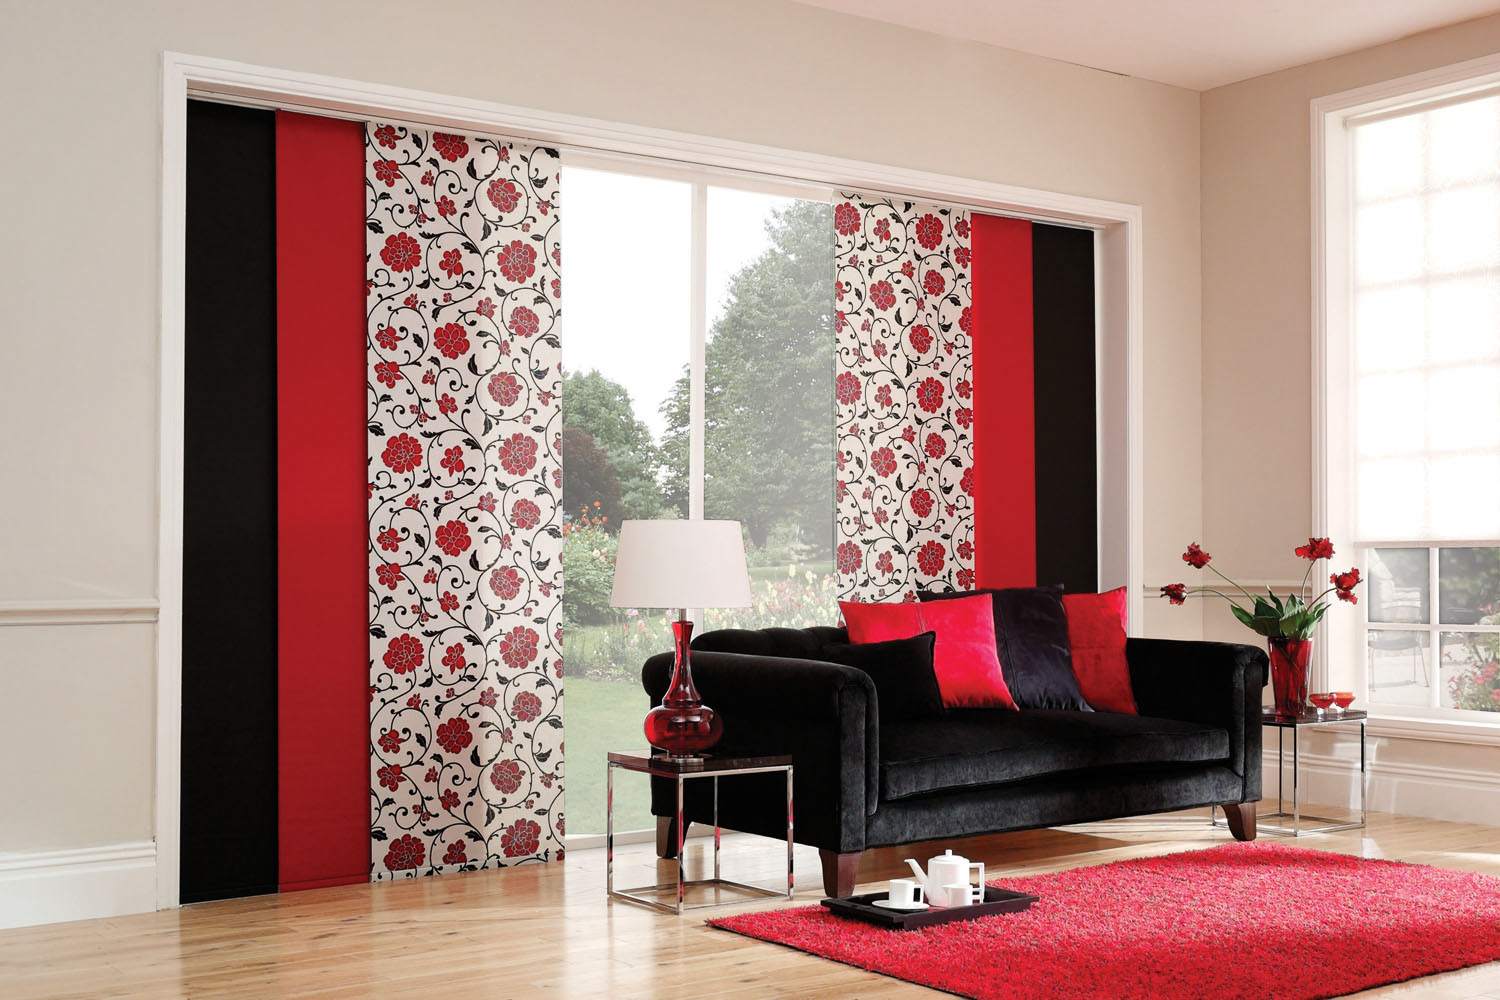 west coast shutters and window blinds